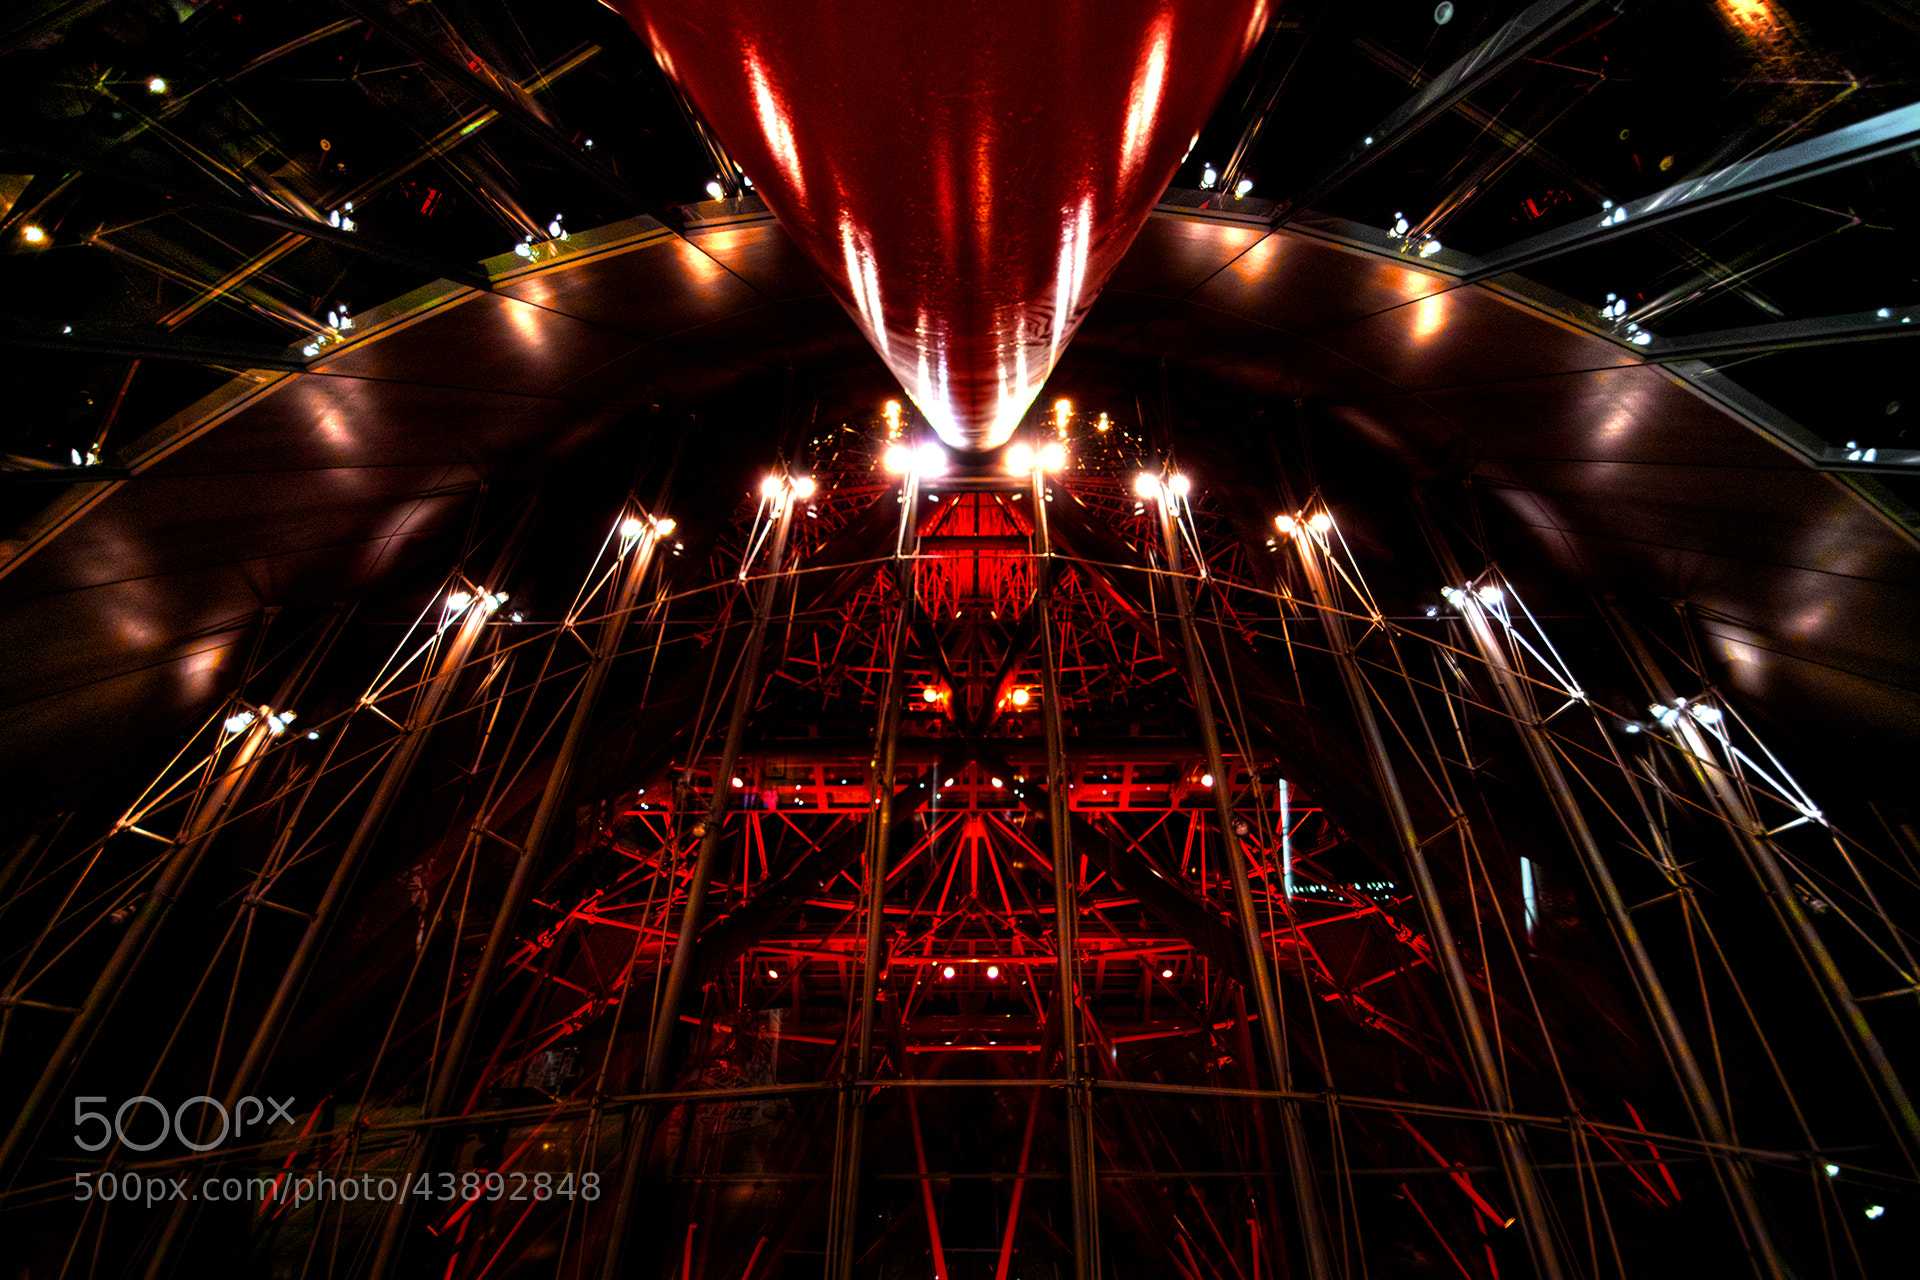 Photograph Red by Azul Obscura on 500px